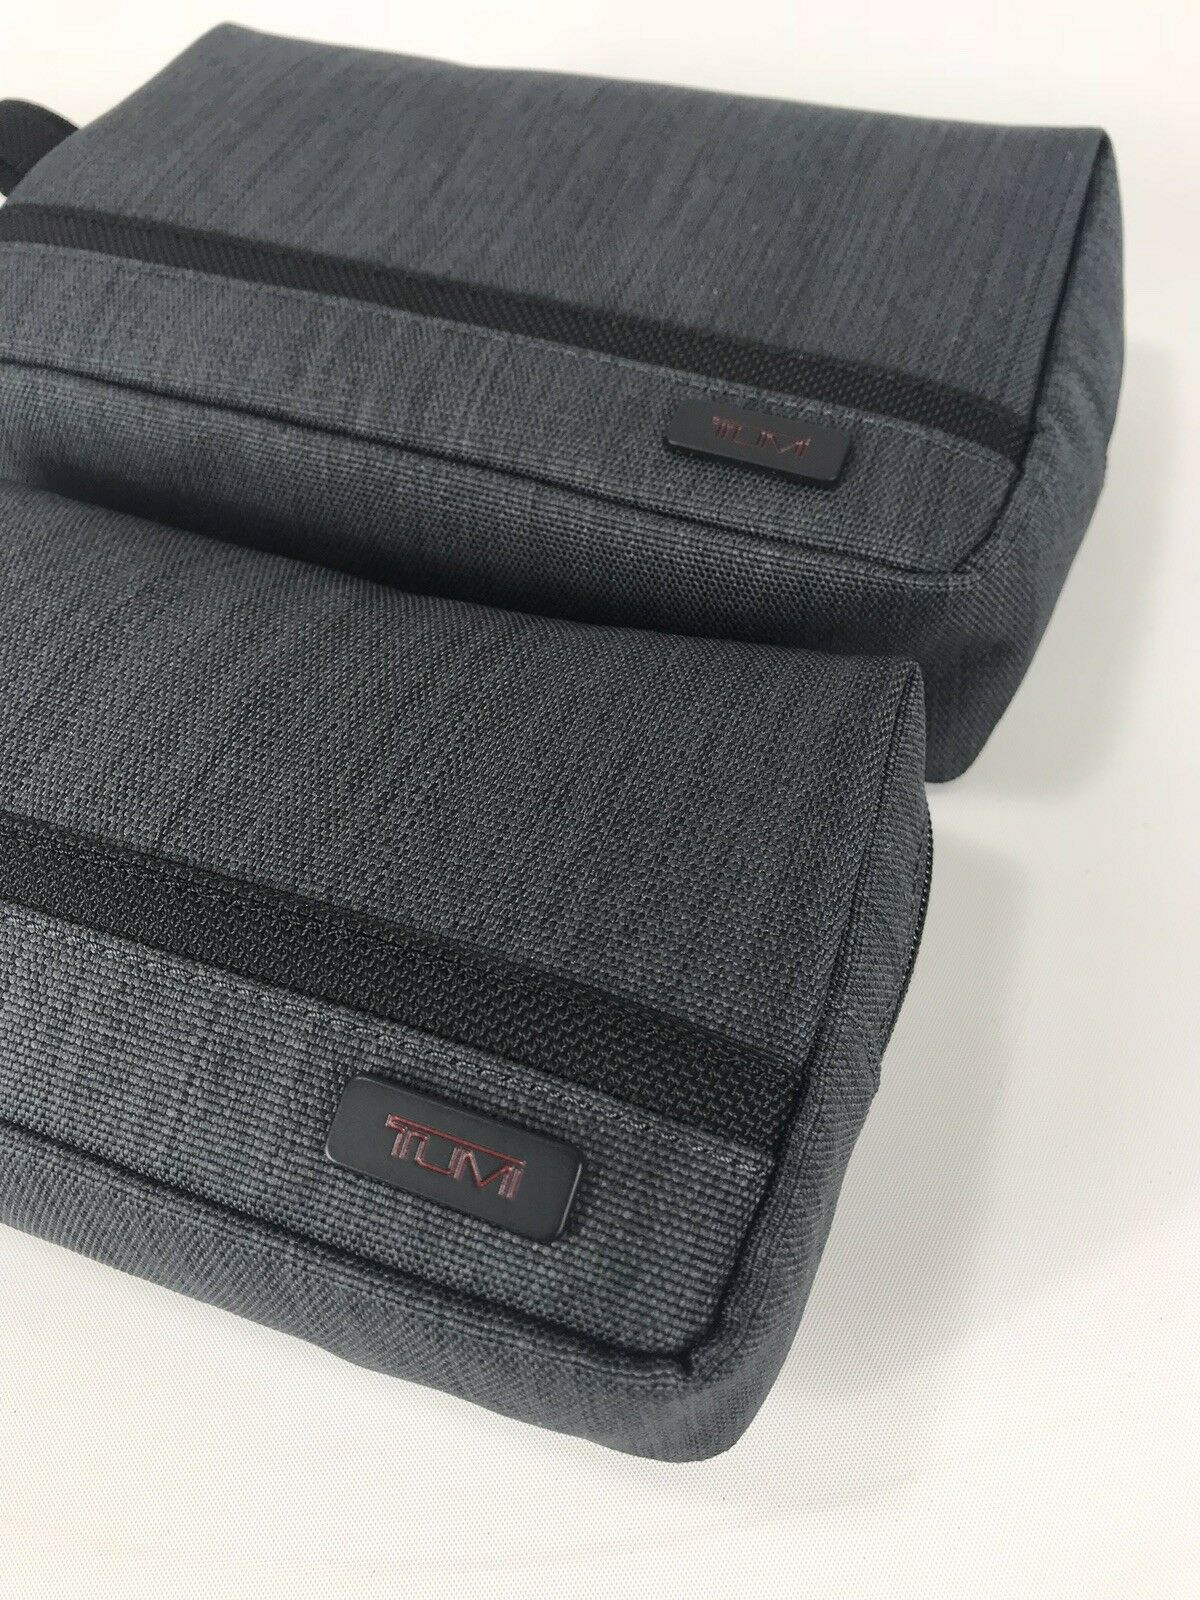 Tumi Small and Medium Travel Kit Zipper Cord Pouch Charcoal